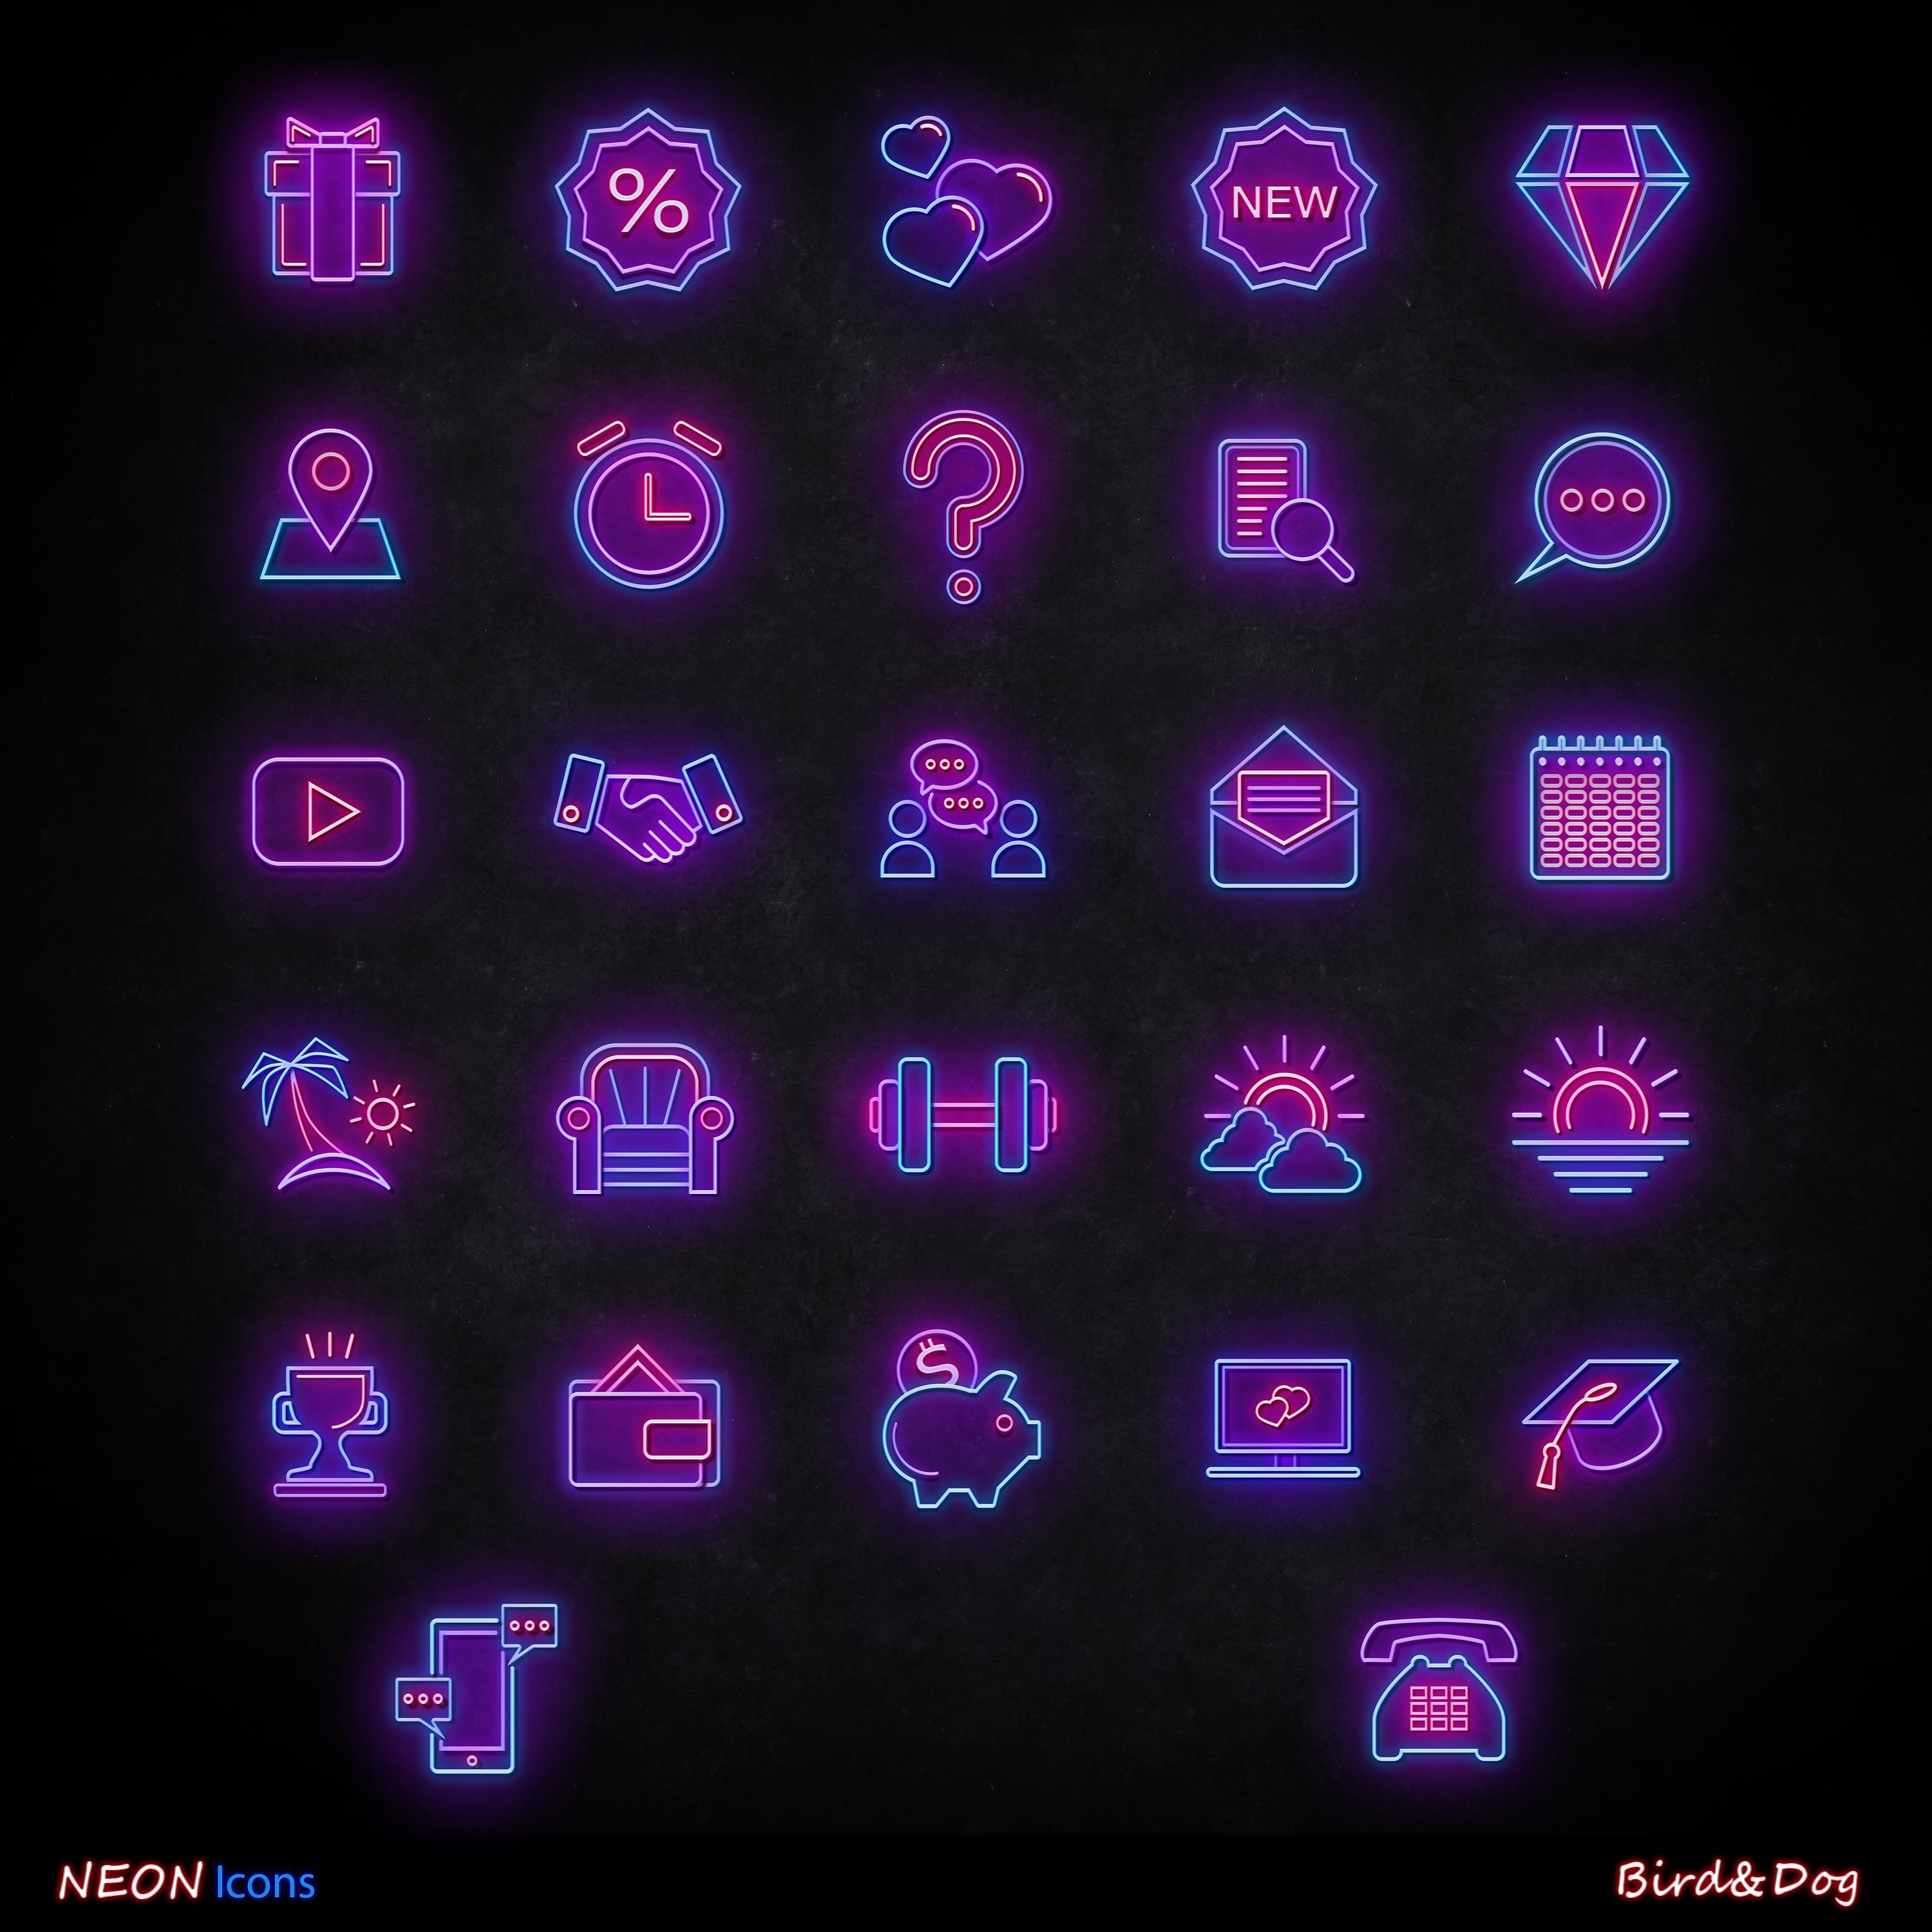 56 Instagram Story Highlight Covers Neon Icons For Etsy In 2020 Wallpaper Iphone Neon Purple Wallpaper Iphone Iphone Wallpaper Tumblr Aesthetic